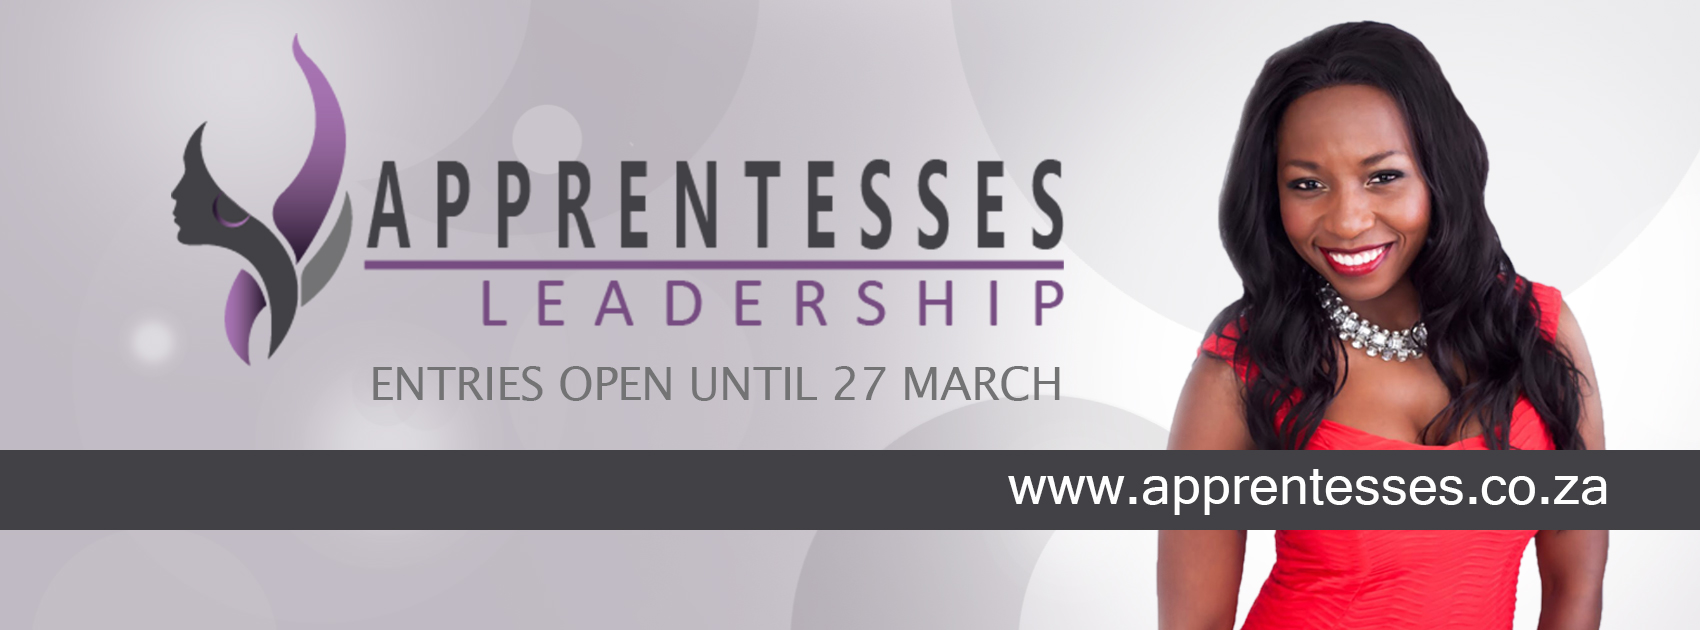 Peri-Peri-Creative-Apprentesses leadership Facebook Banner Final